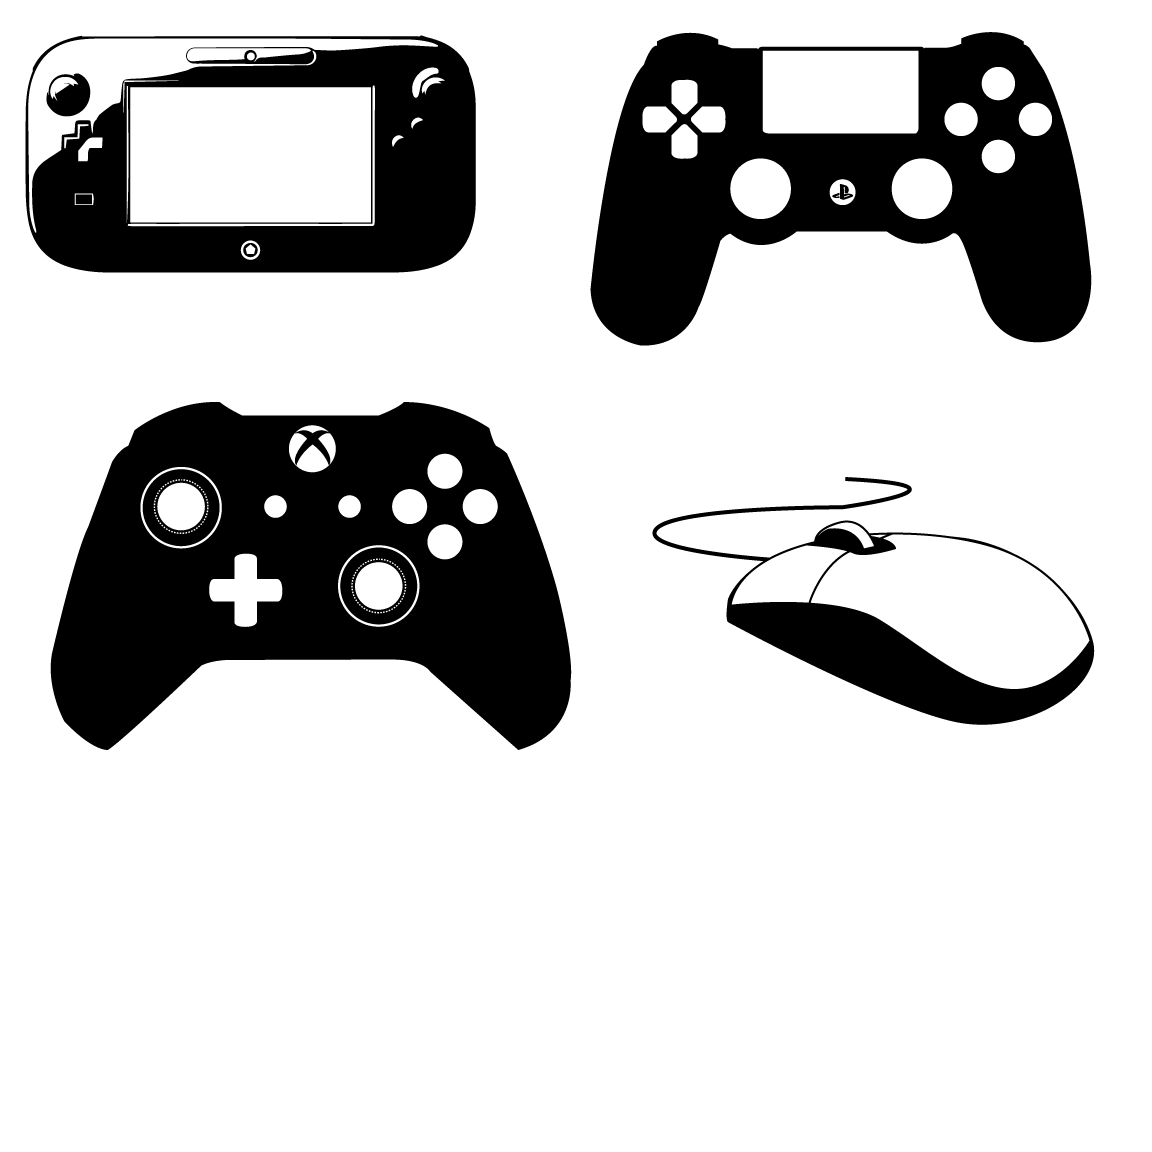 Game Controller Icon Vector Bay Laundromat Coin Op